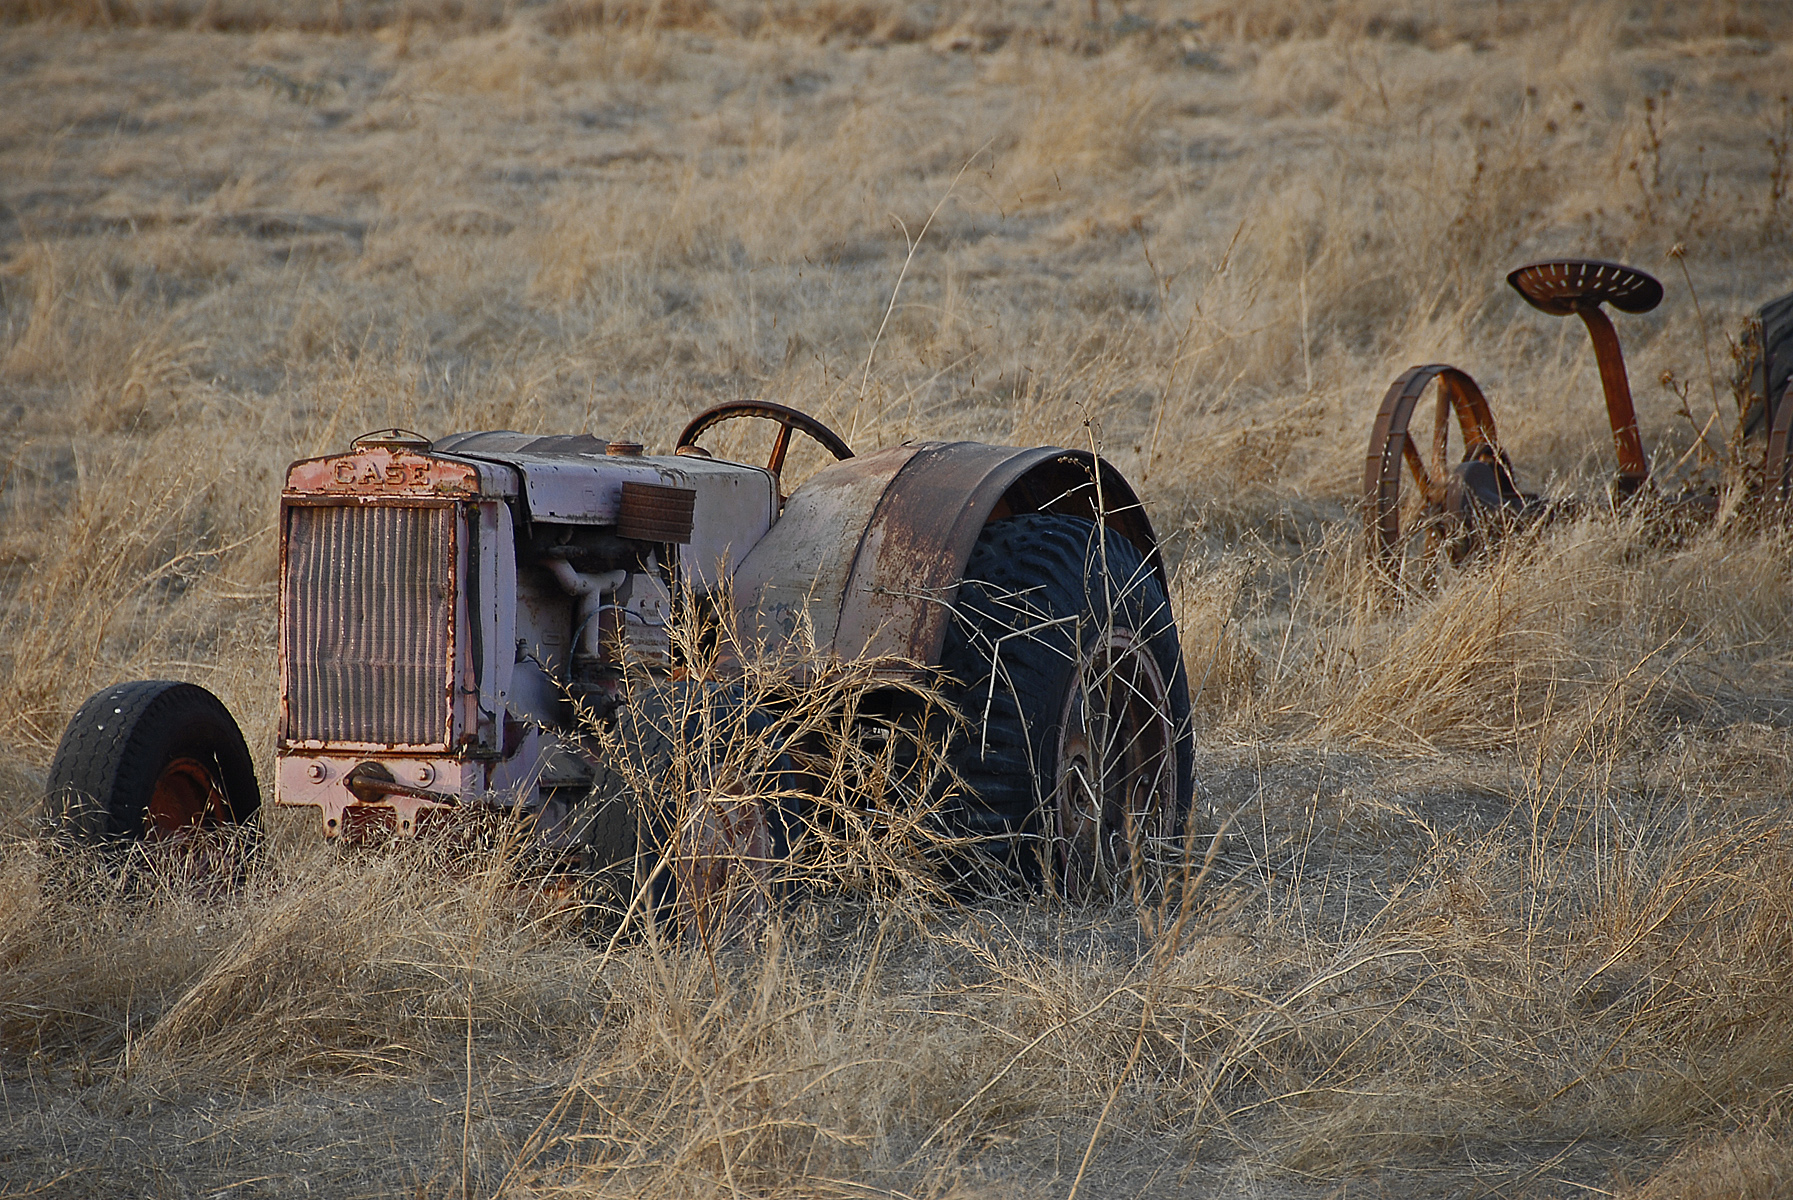 Rusted Workhorse, Bspo06, Deserted, Field, Rust, HQ Photo